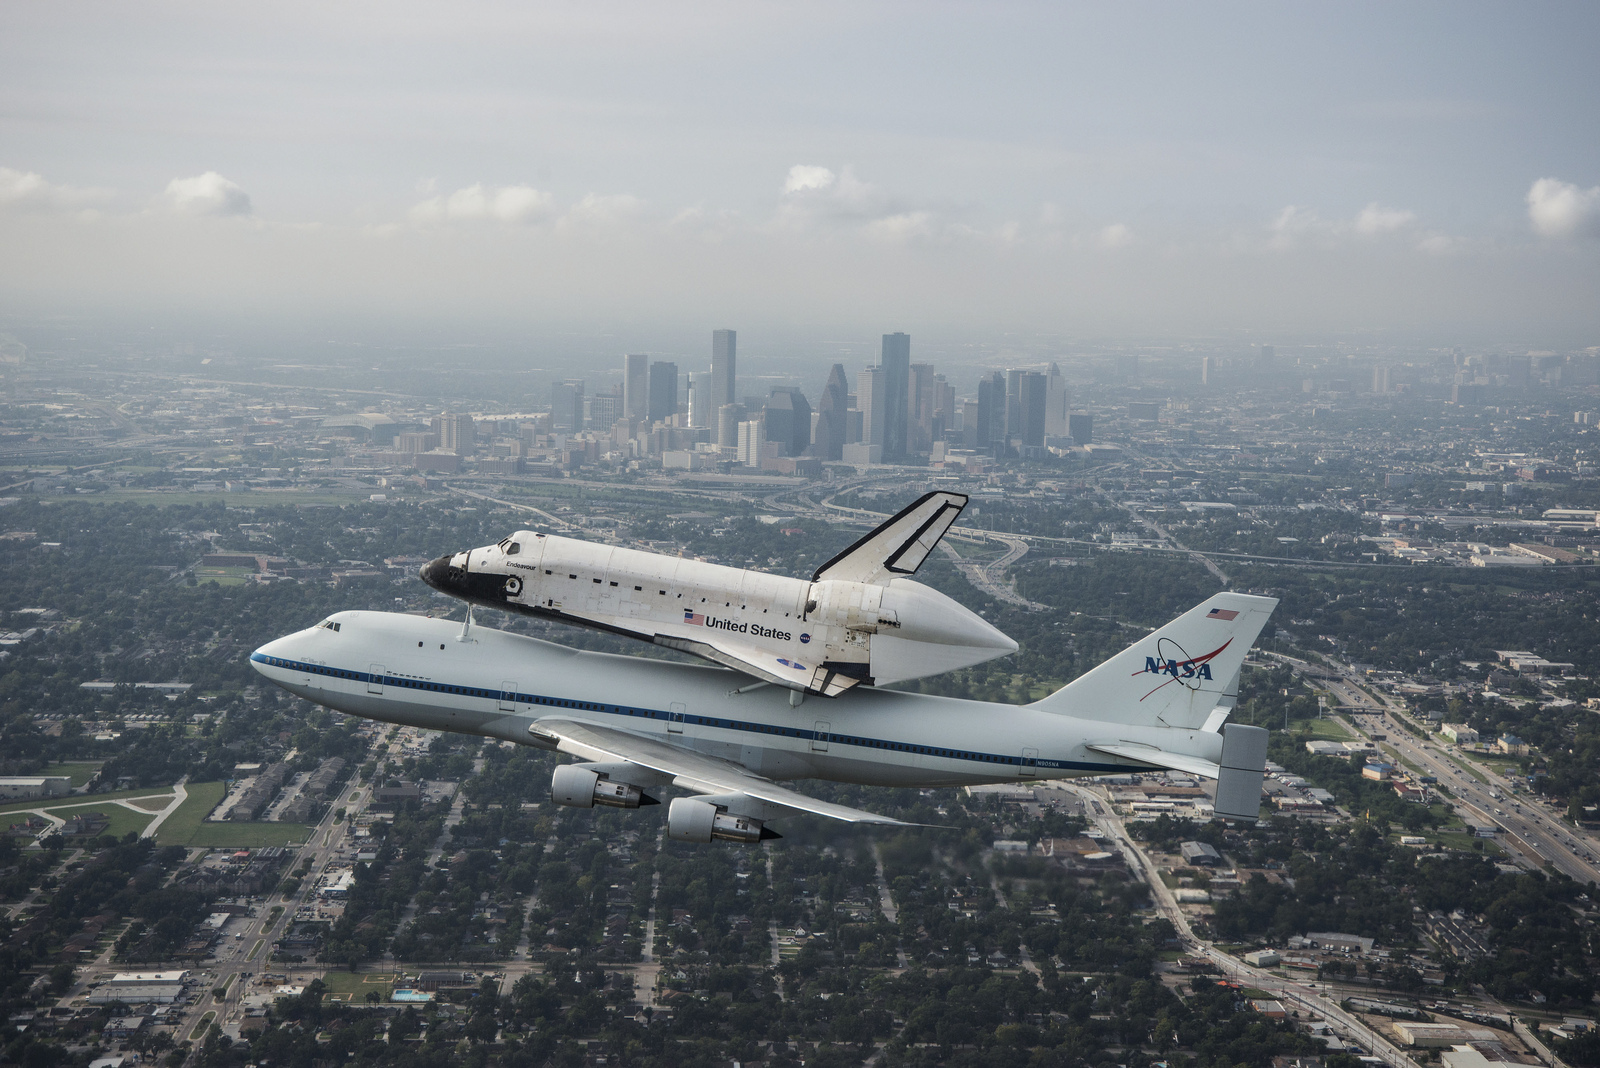 space shuttle endeavour time lapse - photo #33